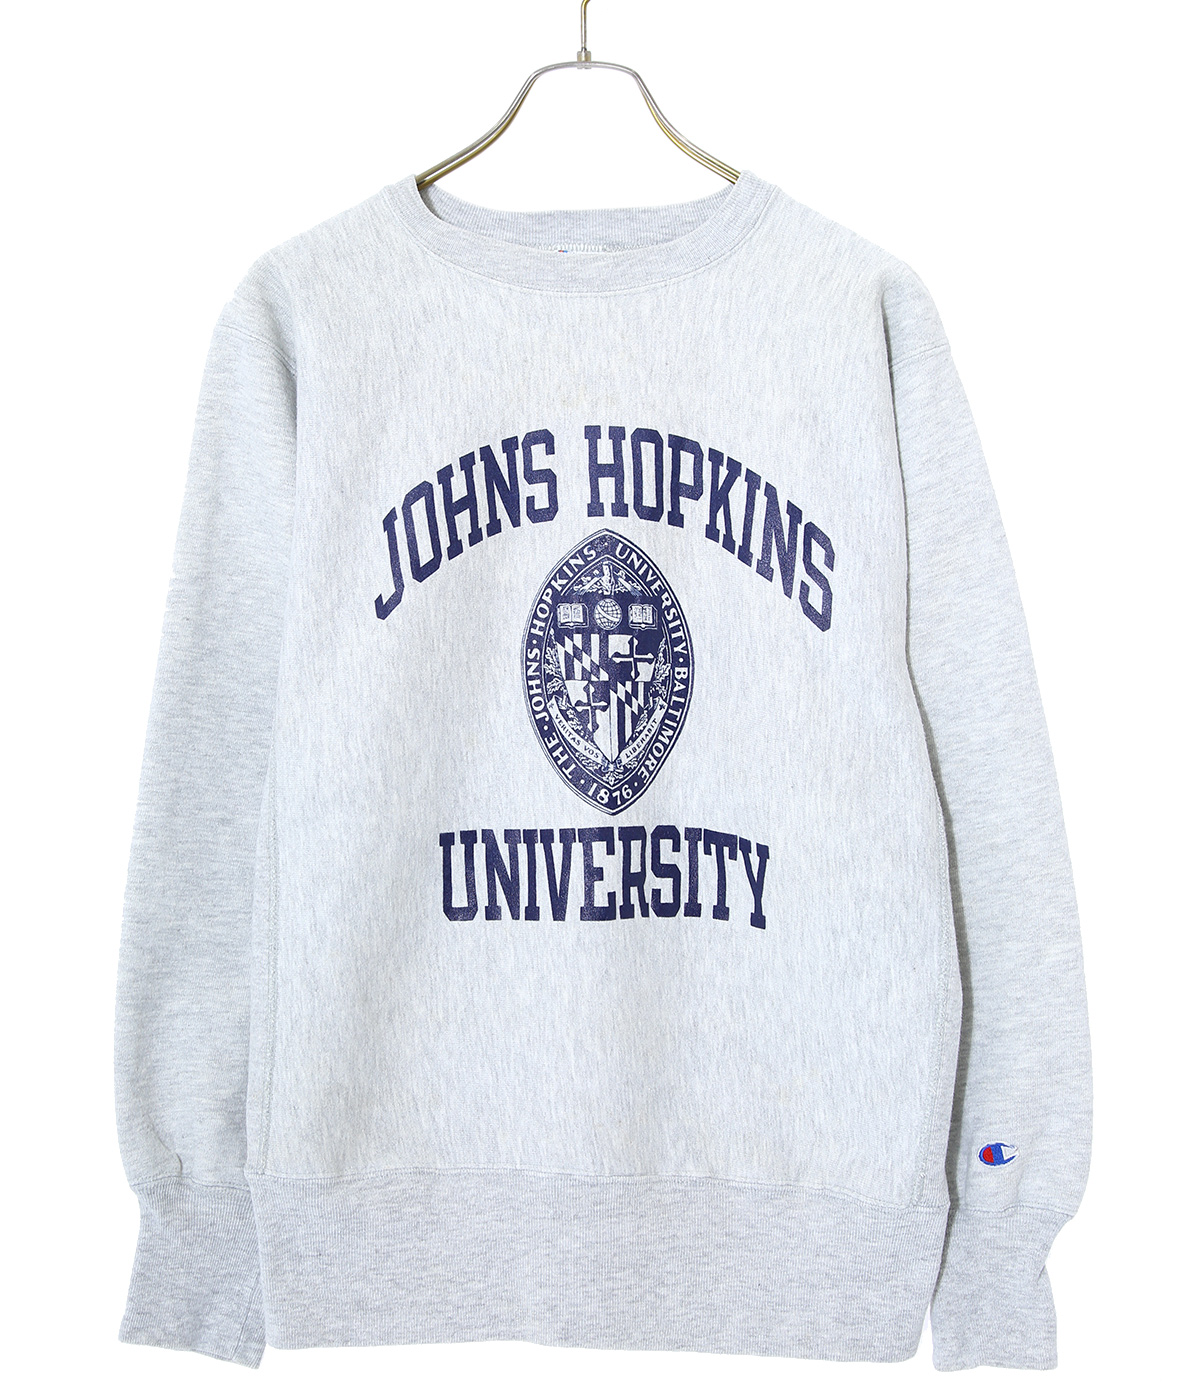 【USED】80's Champion JOHNS HOPKINS SW